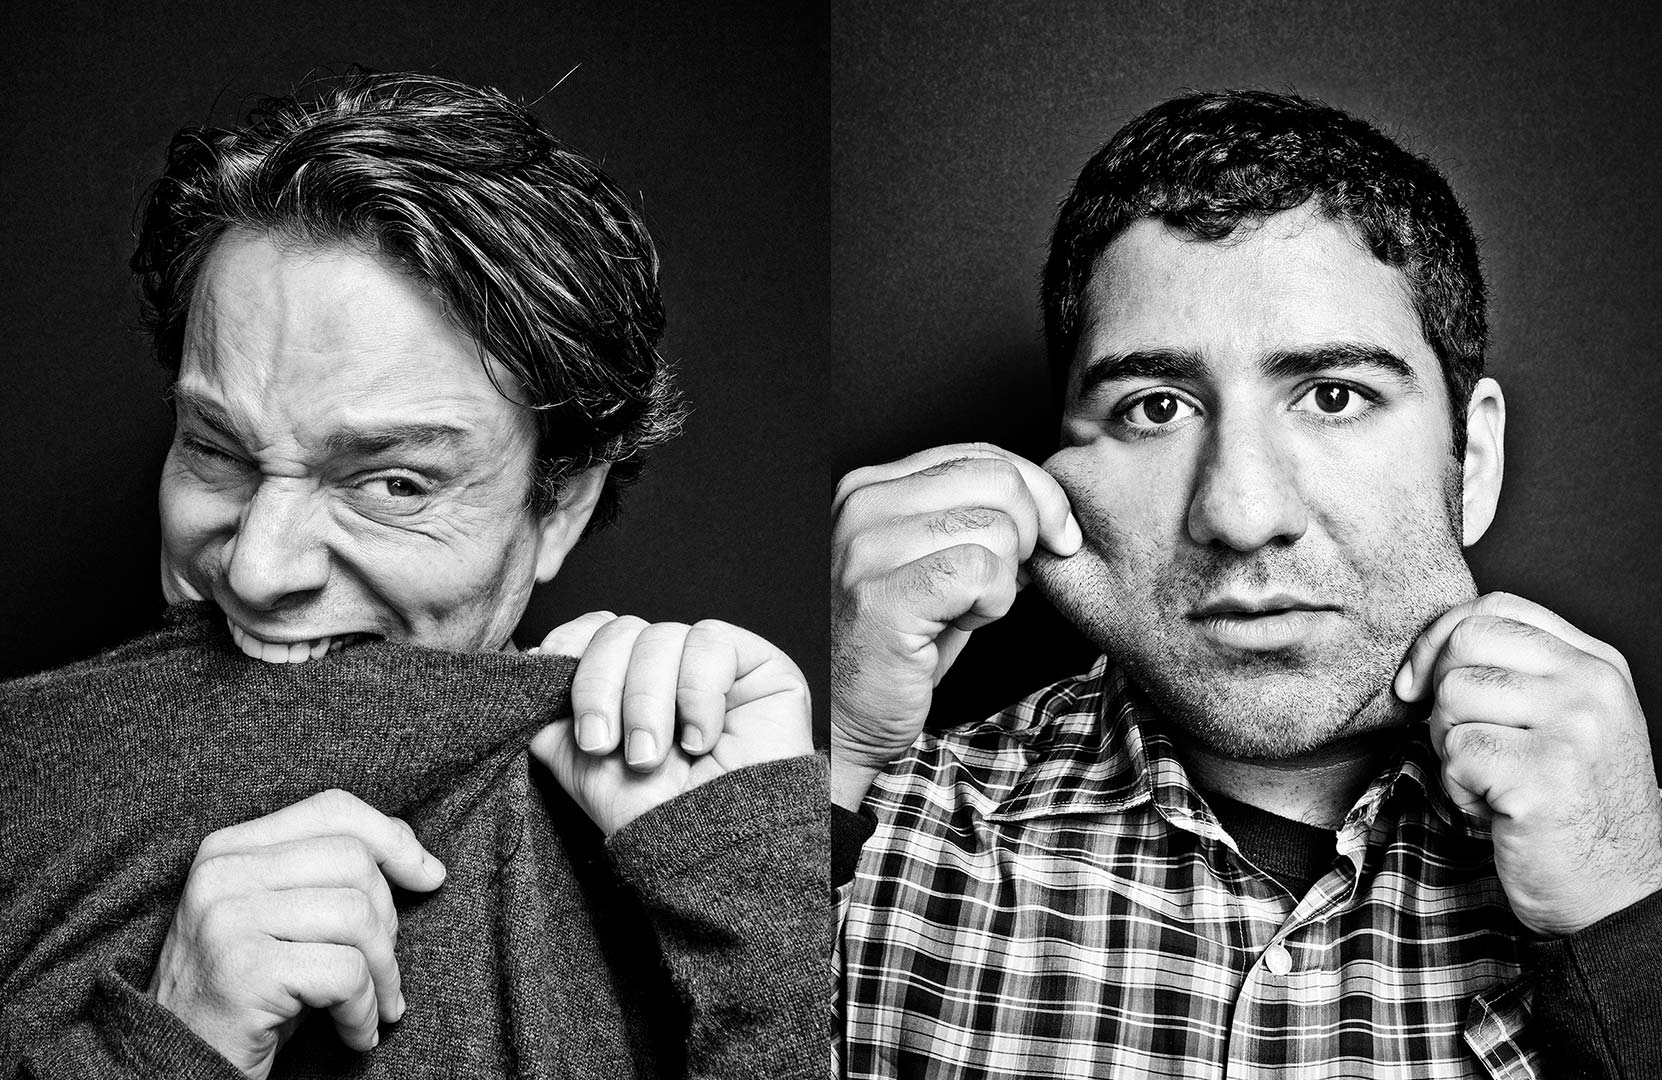 black & white portraits of actors Chris Kattan and Parvesh Cheena